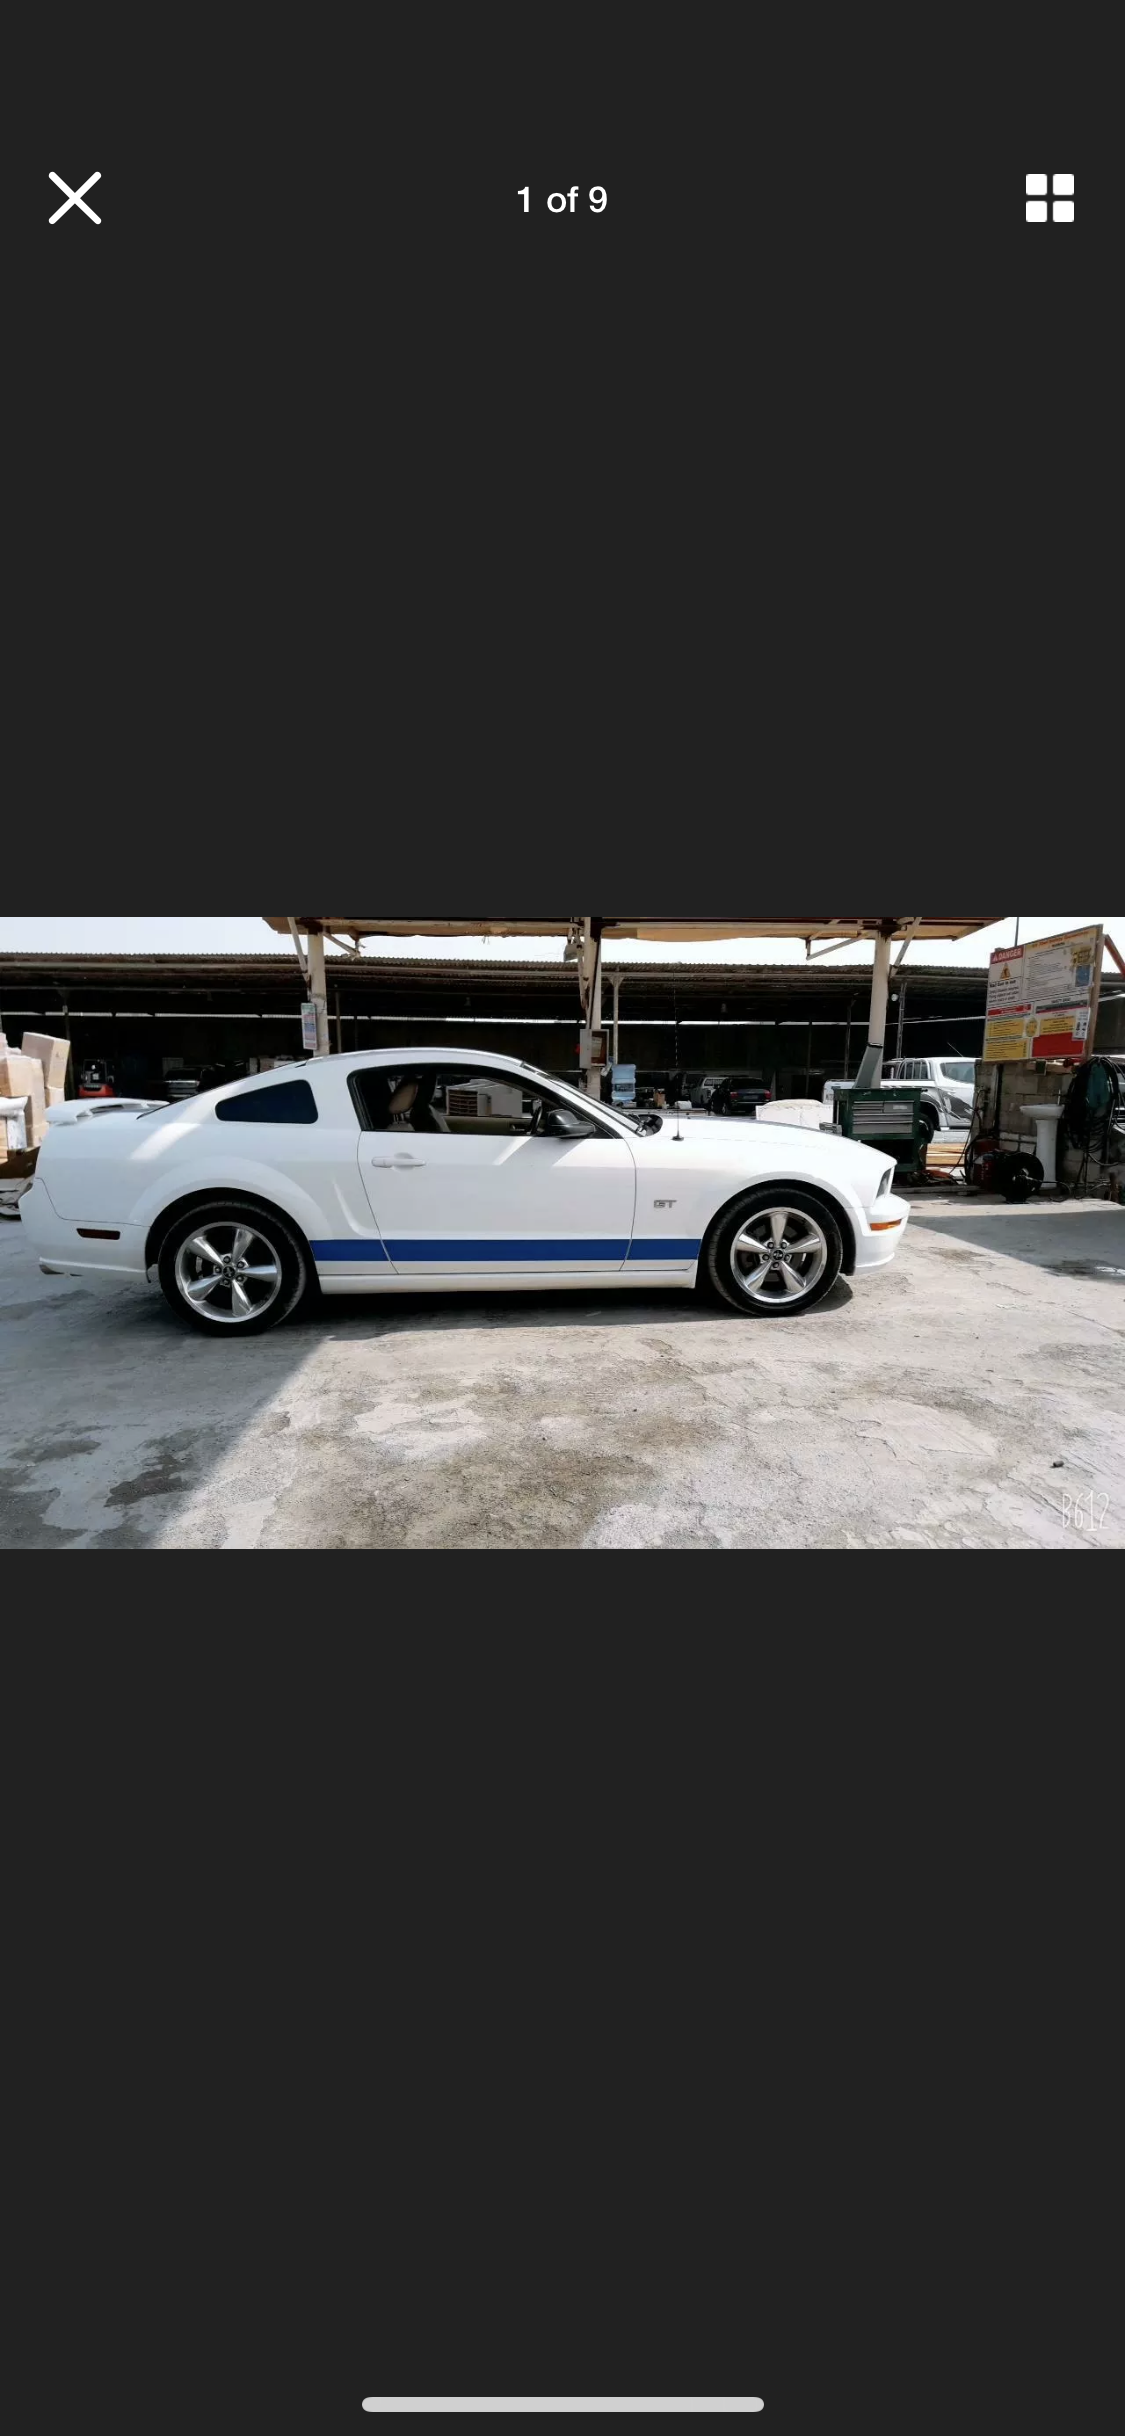 2005 FORD MUSTANG 4.6 V8 GT WHITE LHD FRESH IMPORT For Sale (picture 1 of 6)